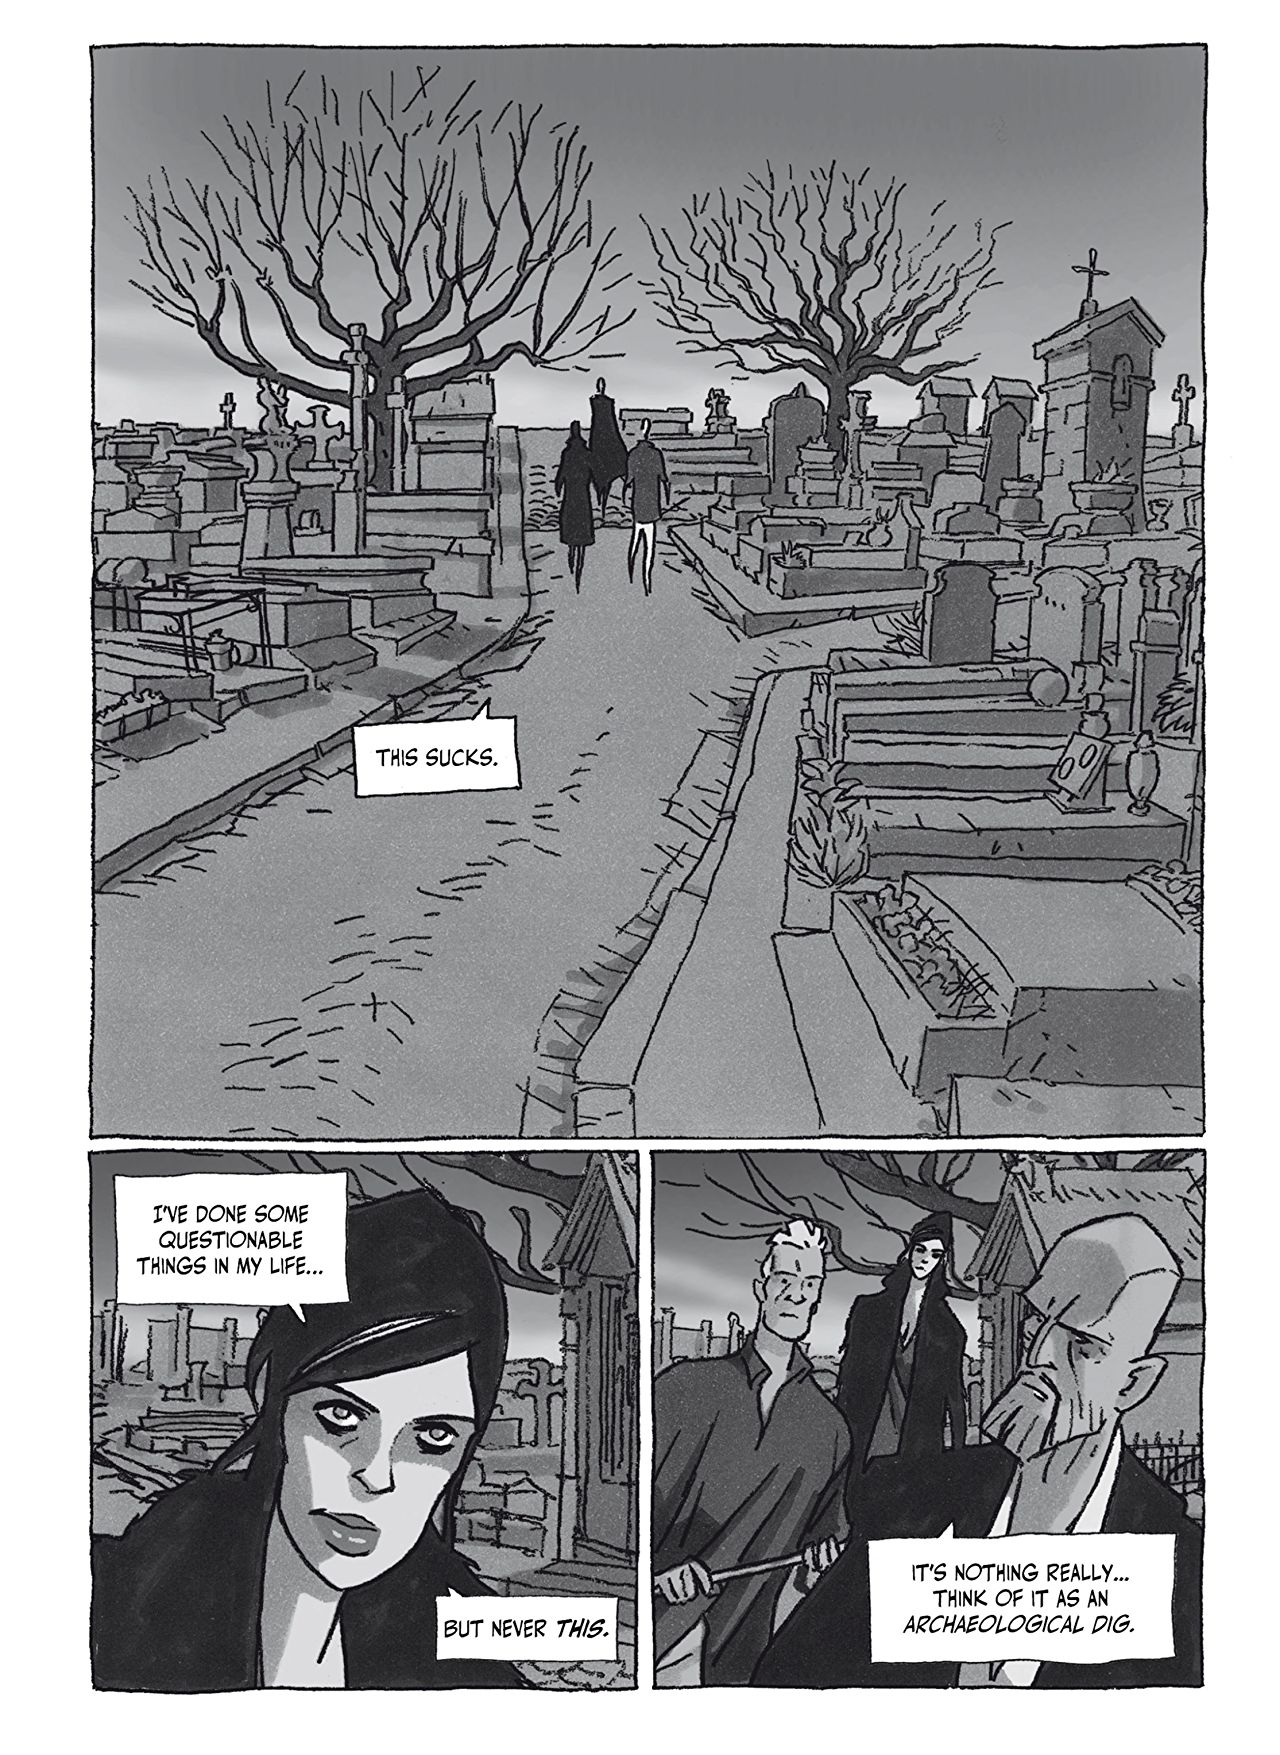 Bad Break Graphic Novel Is A Crime Story With Plenty of Noir Tropes Philippe Riche 4